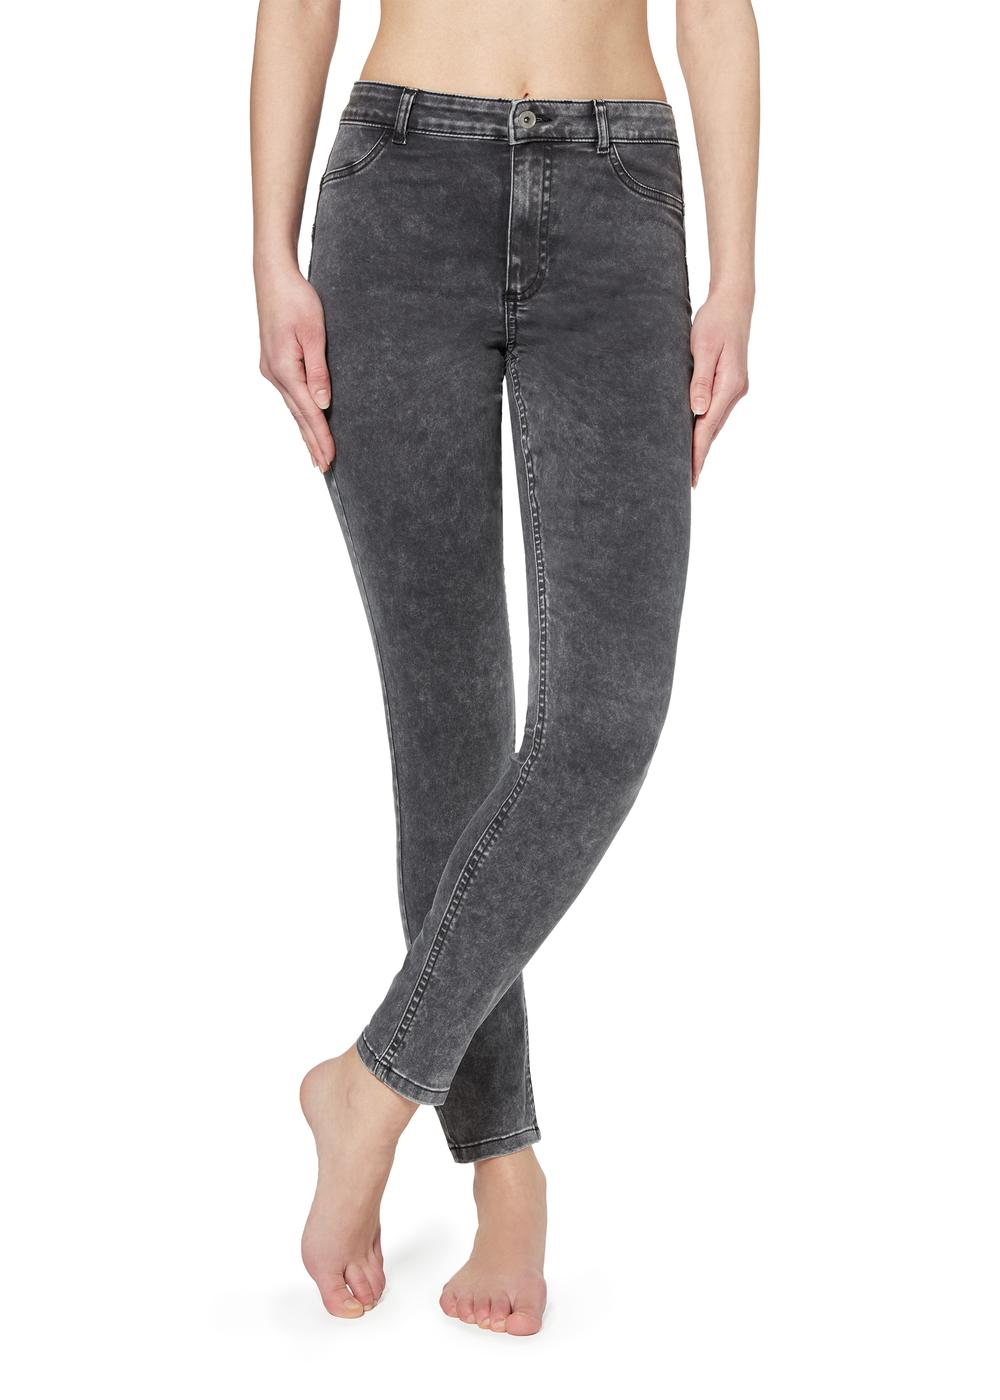 Push-up and soft touch jeans